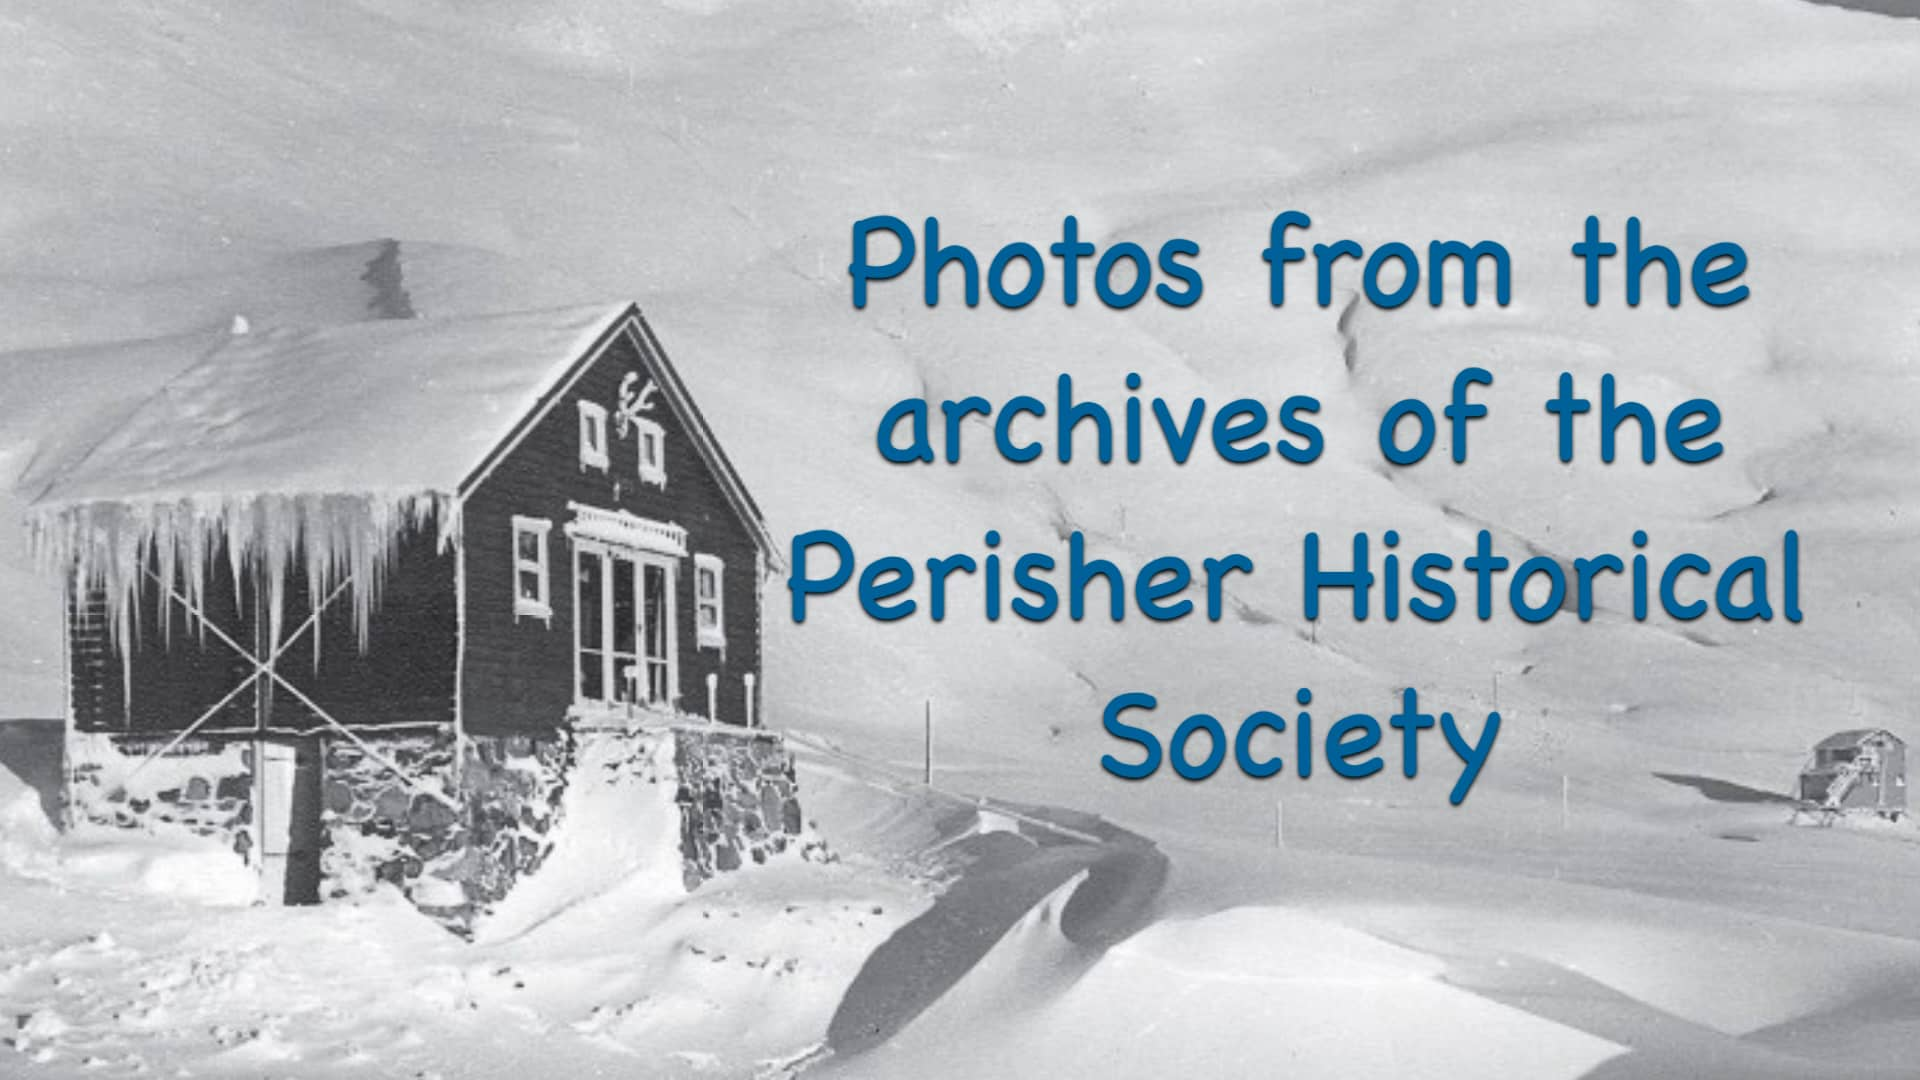 Photos from the archives of the Perisher Historical Society